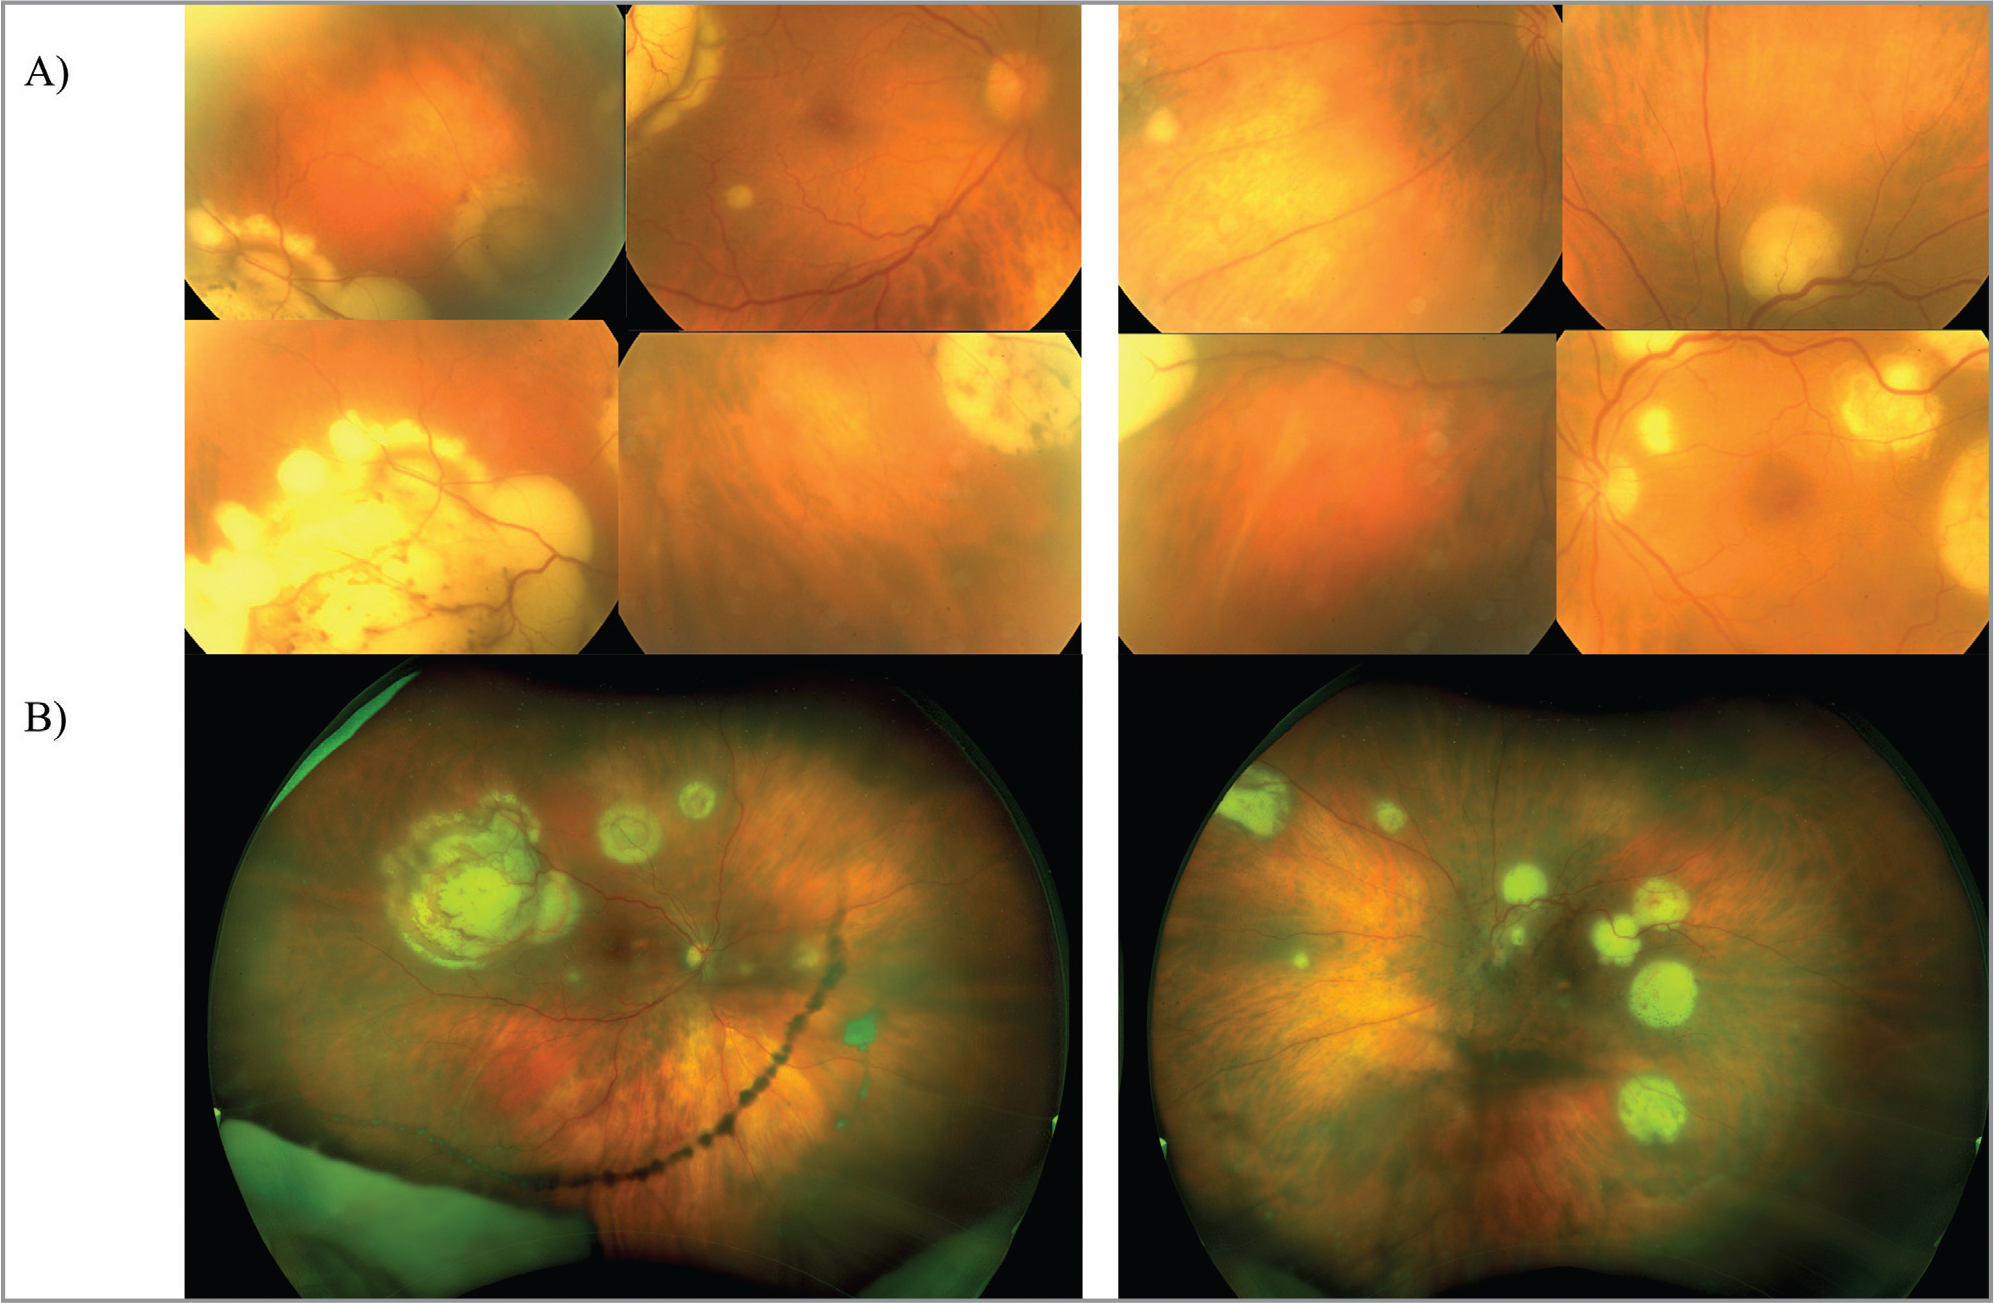 Fundus photographs of multifocal chorioretinal lesions using 35° and widefield imaging.